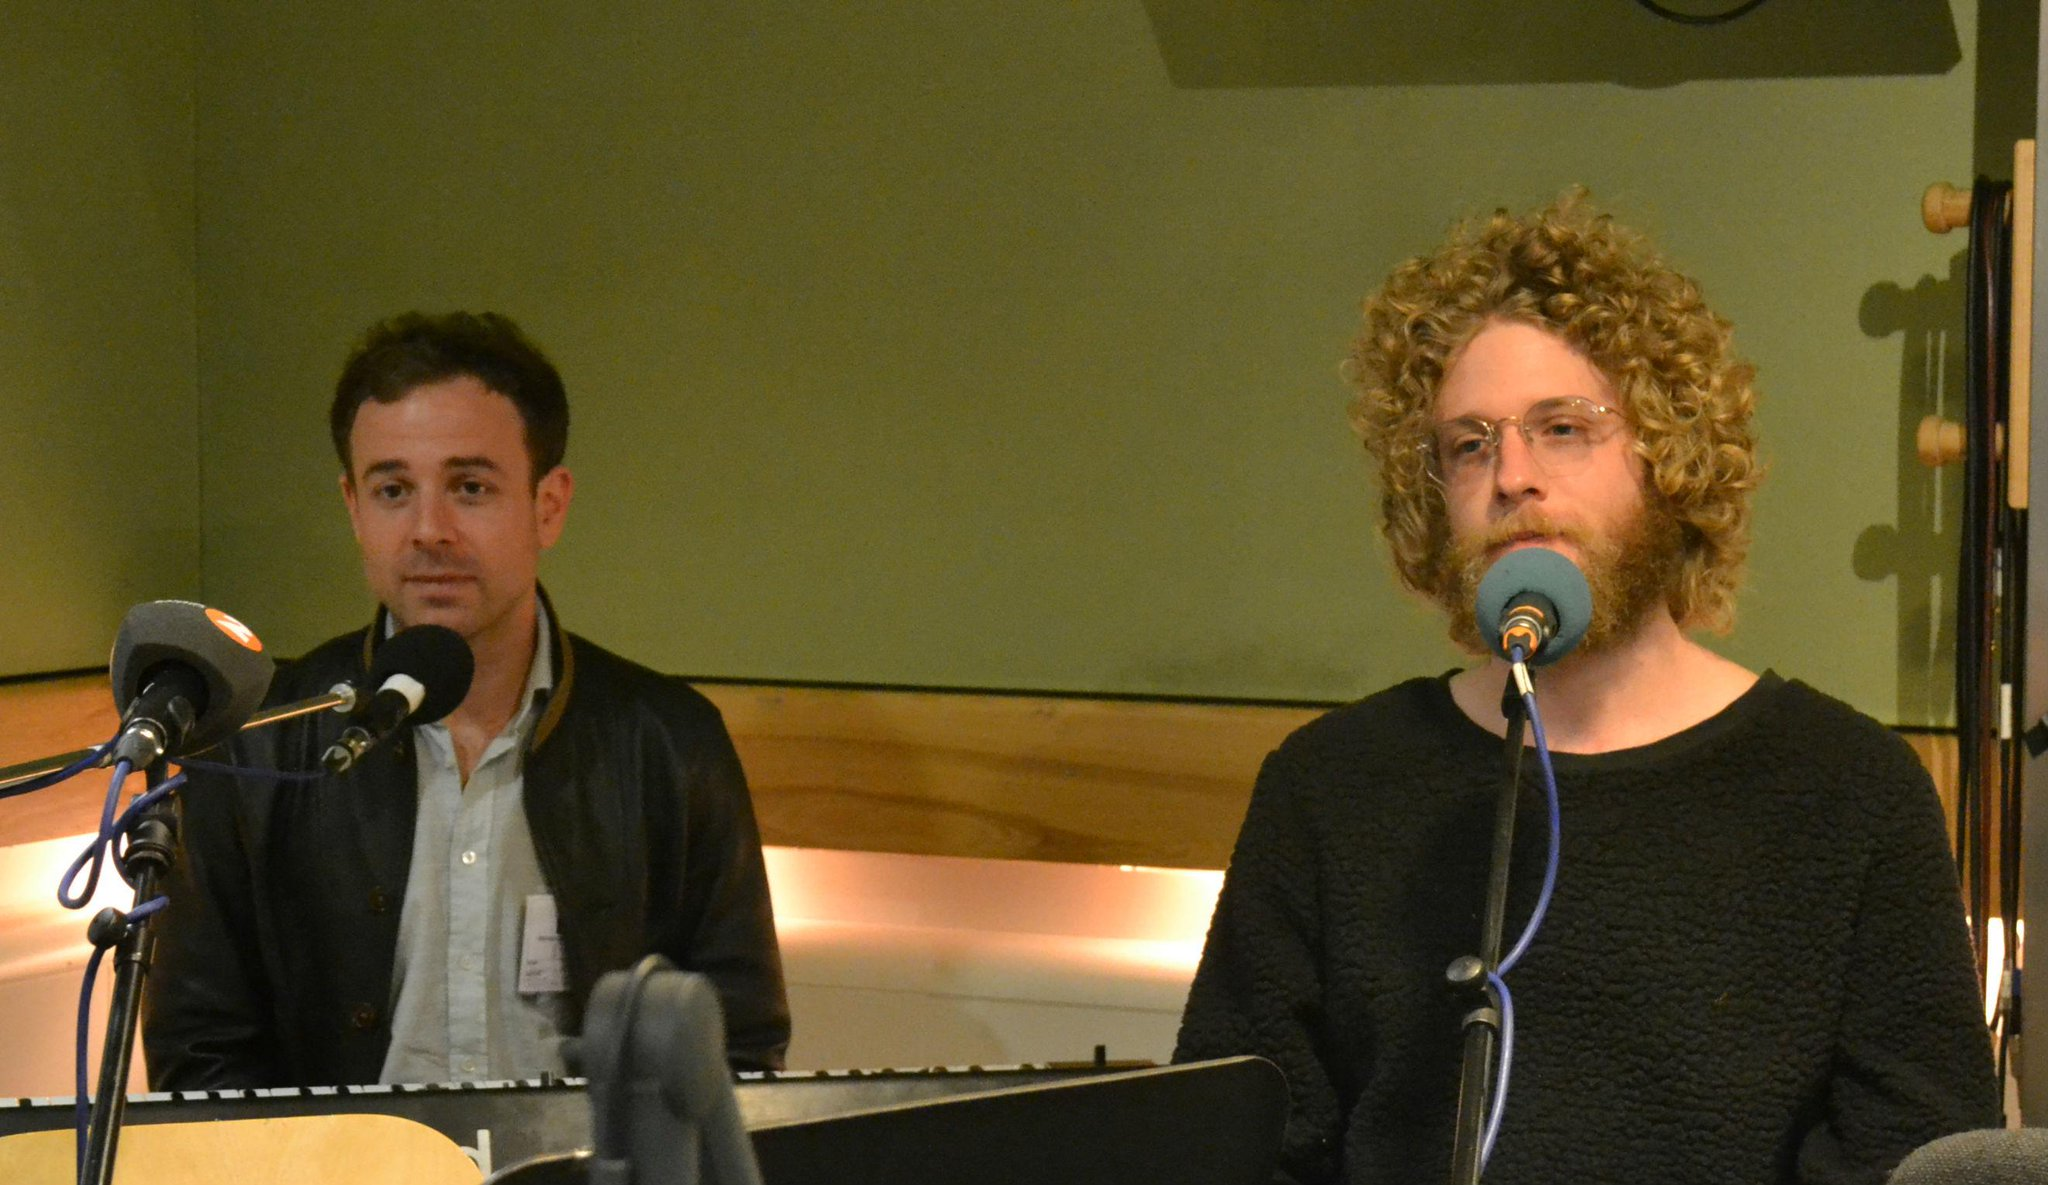 RT @BBCRadio2: The wonderful @dawestheband are LIVE in session RIGHT NOW http://t.co/95BtisNLQi http://t.co/DWdxKkd7U2